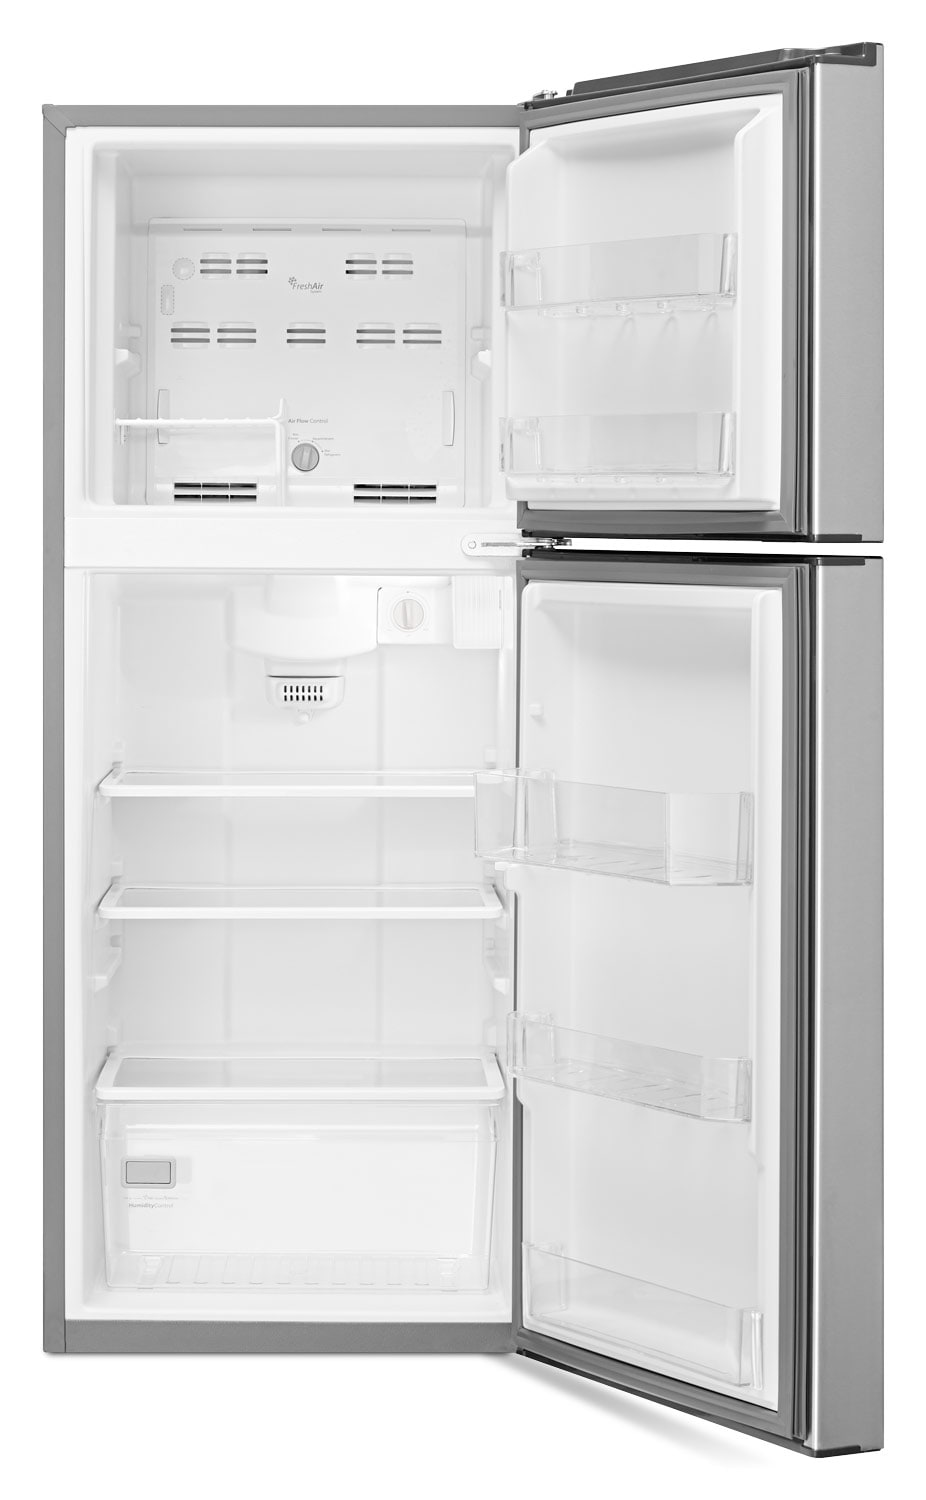 10 Best Images About Over Refrigerator Storage Options On: Whirlpool Stainless Steel Top-Freezer Refrigerator (10.7